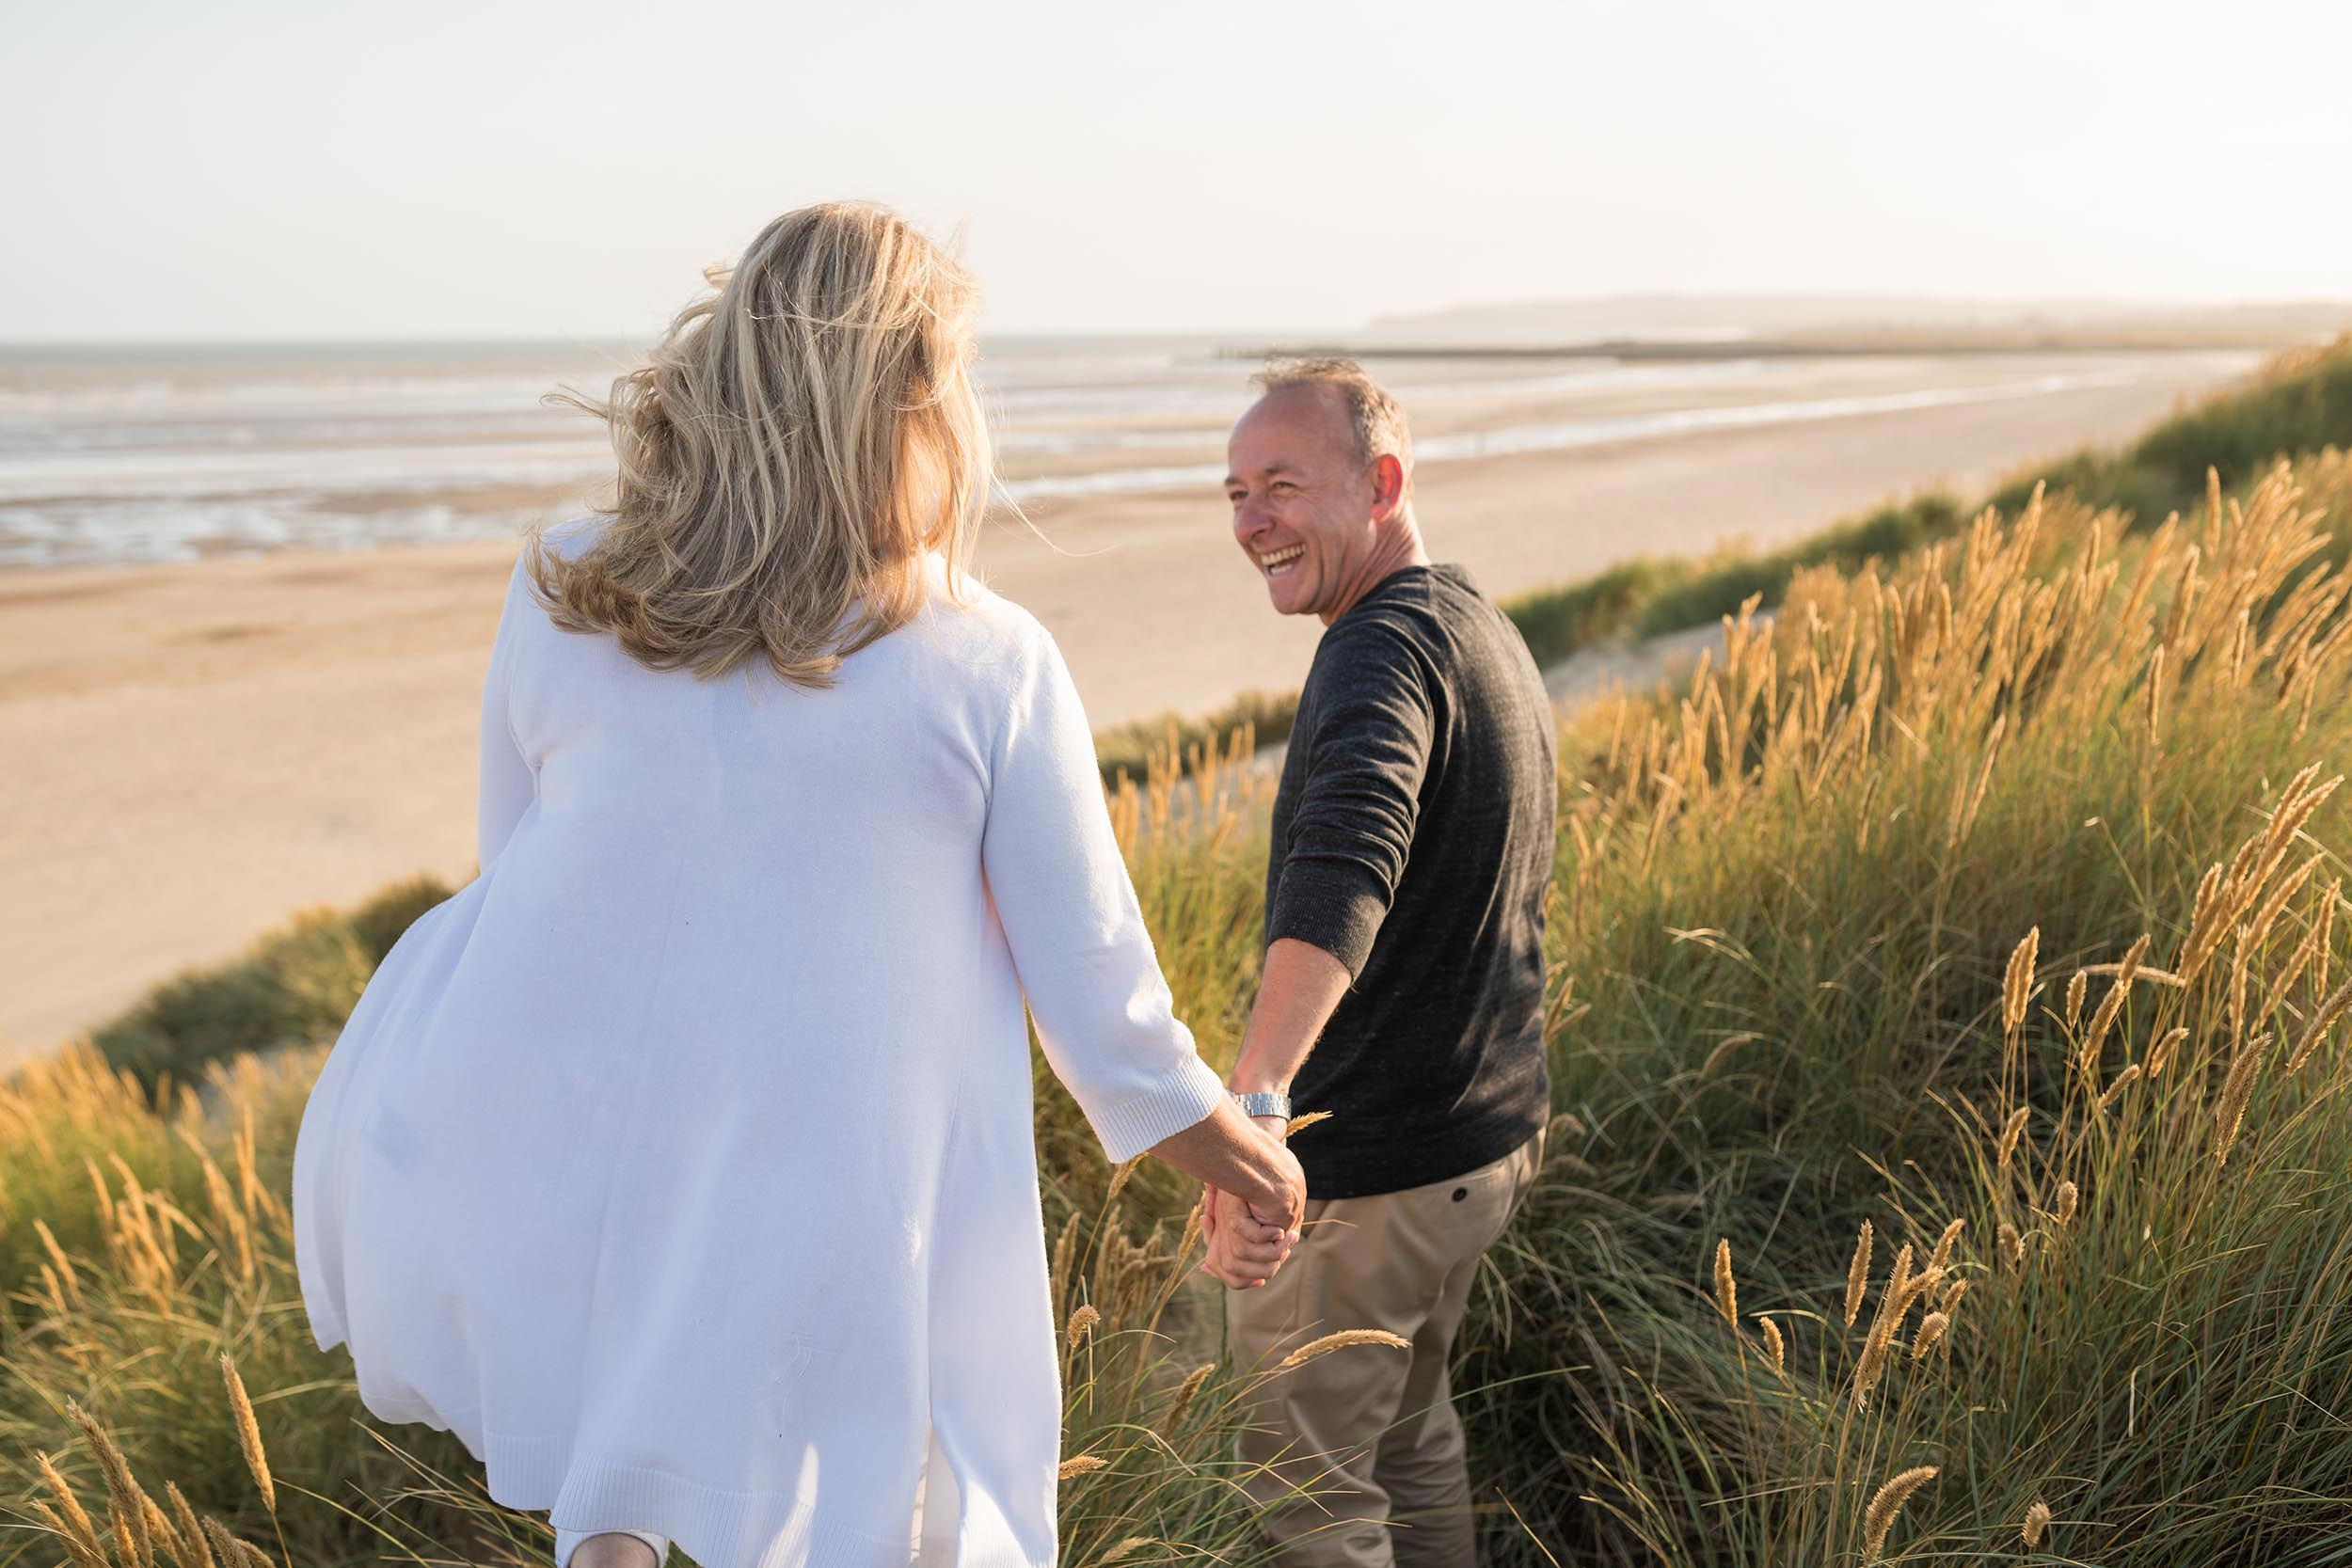 camber-sands-beach-senior-couple-lifestyle-photographer-uk